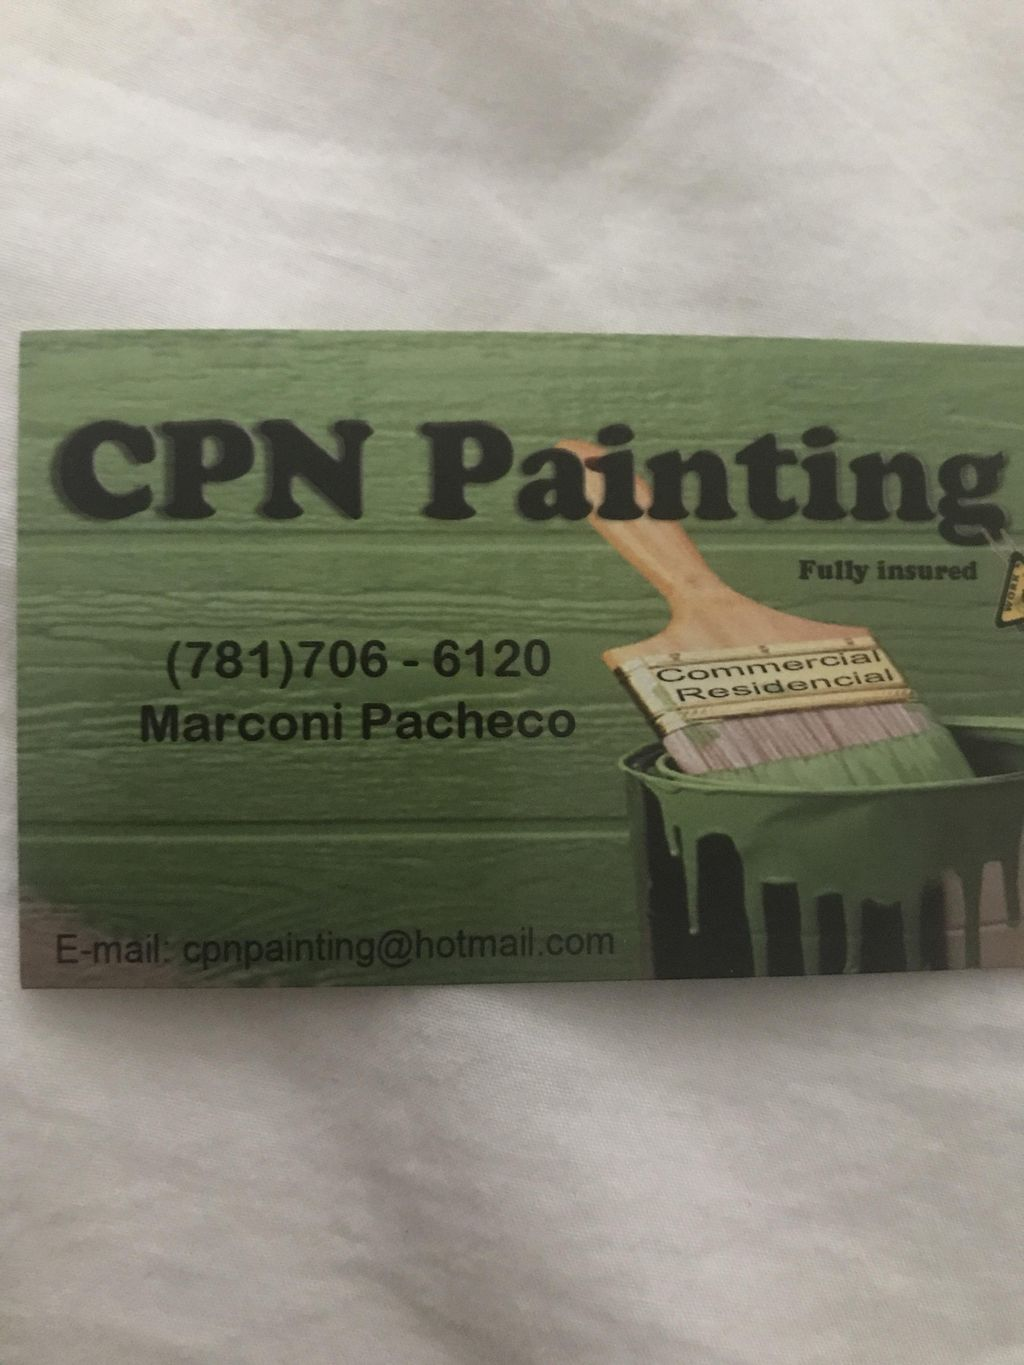 CPN Painting,cleaning,siding,tile,carpentry ,